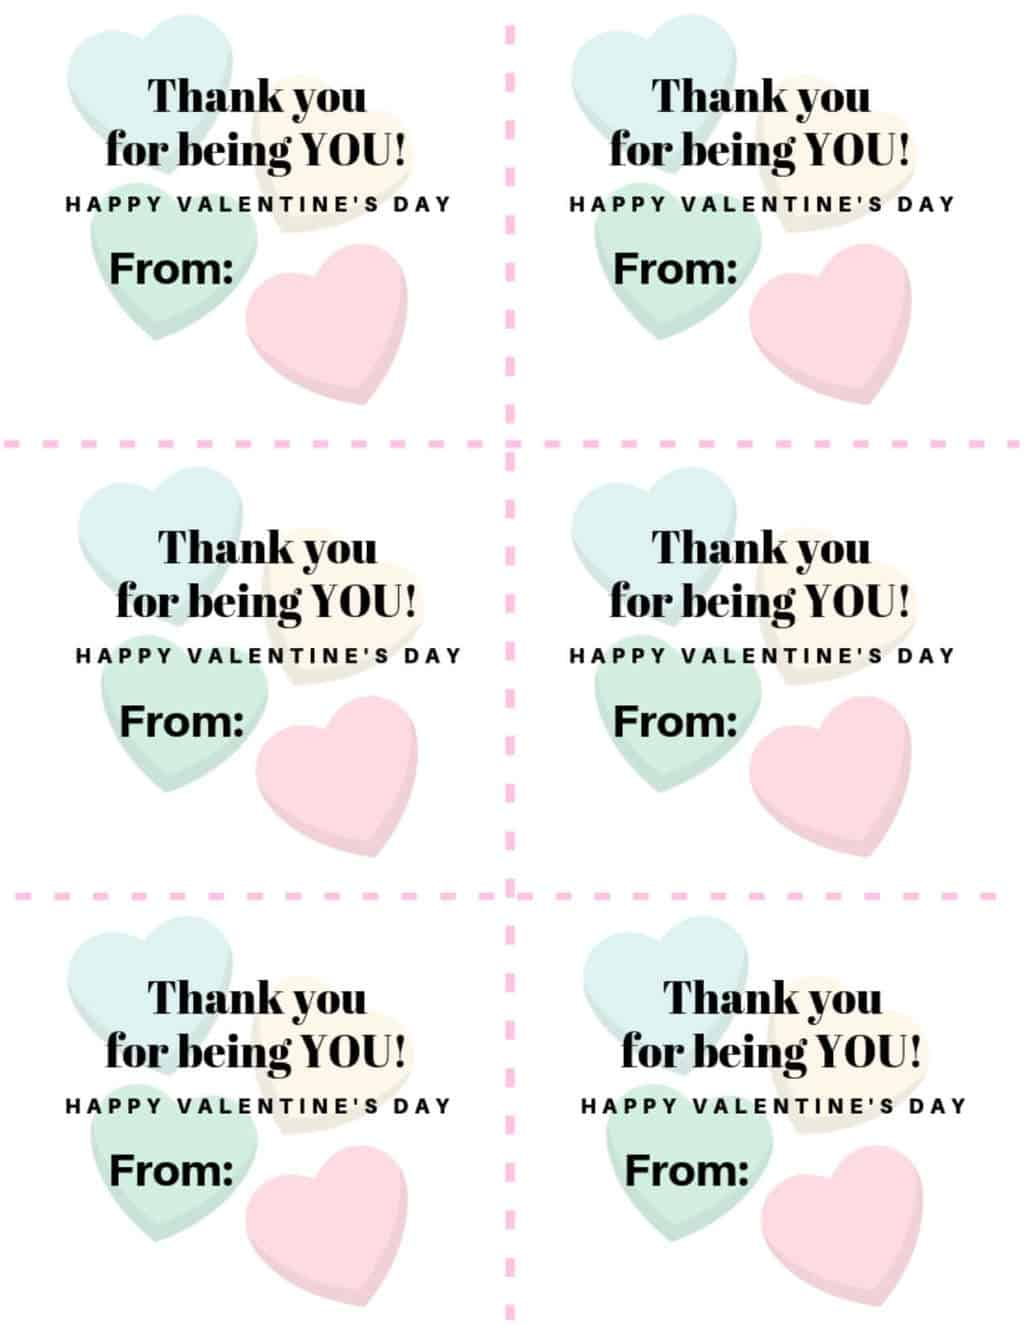 Candy Hearts Valentine's Day Card